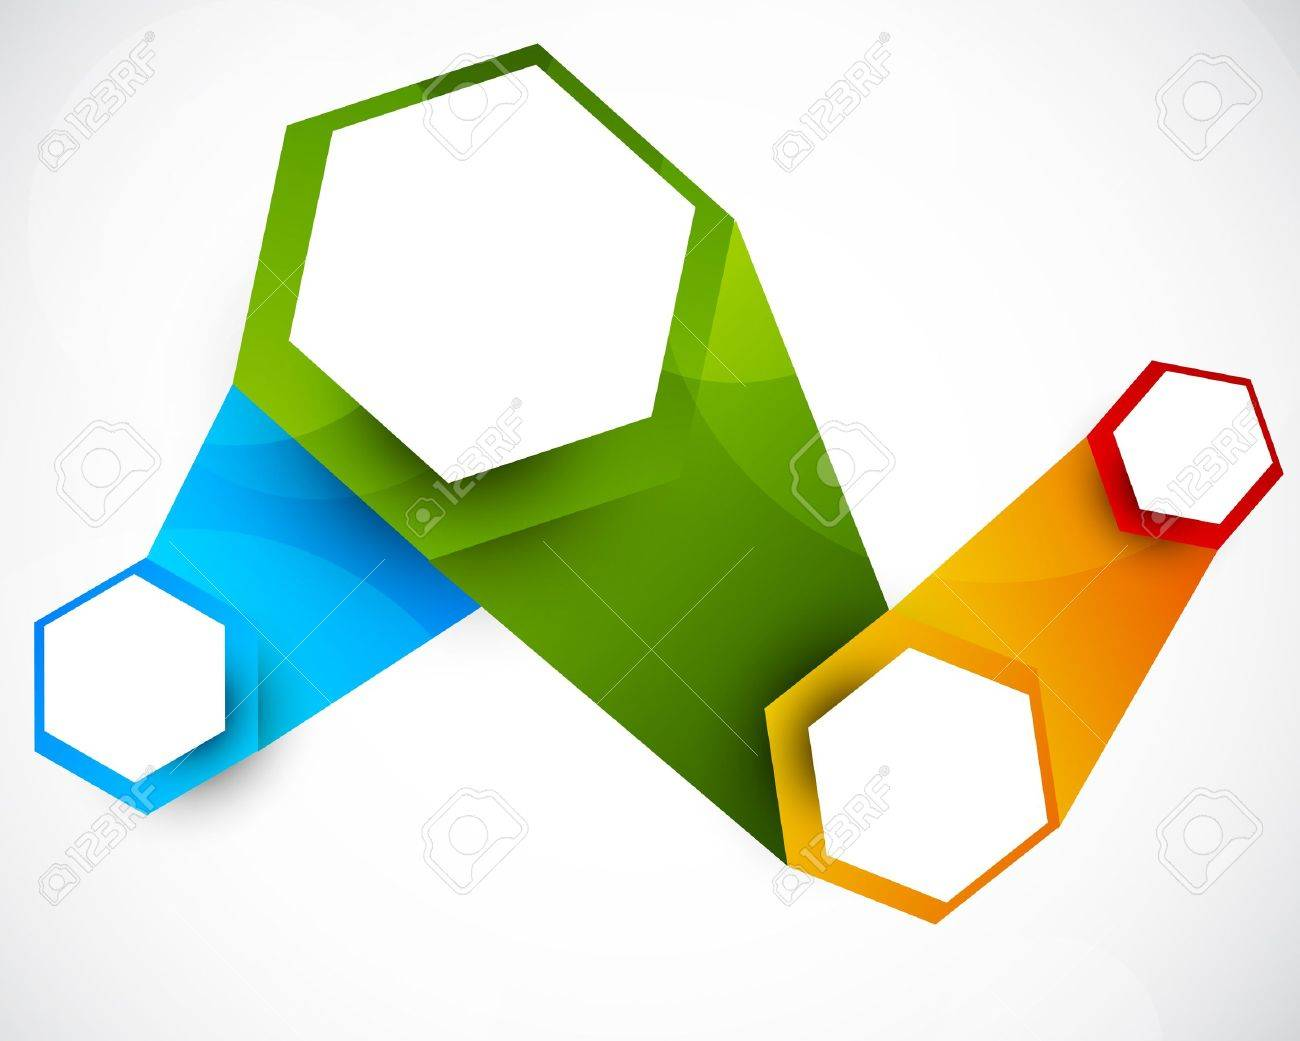 Abstract background with hexagons  Bright colorful illustration Stock Vector - 17994440